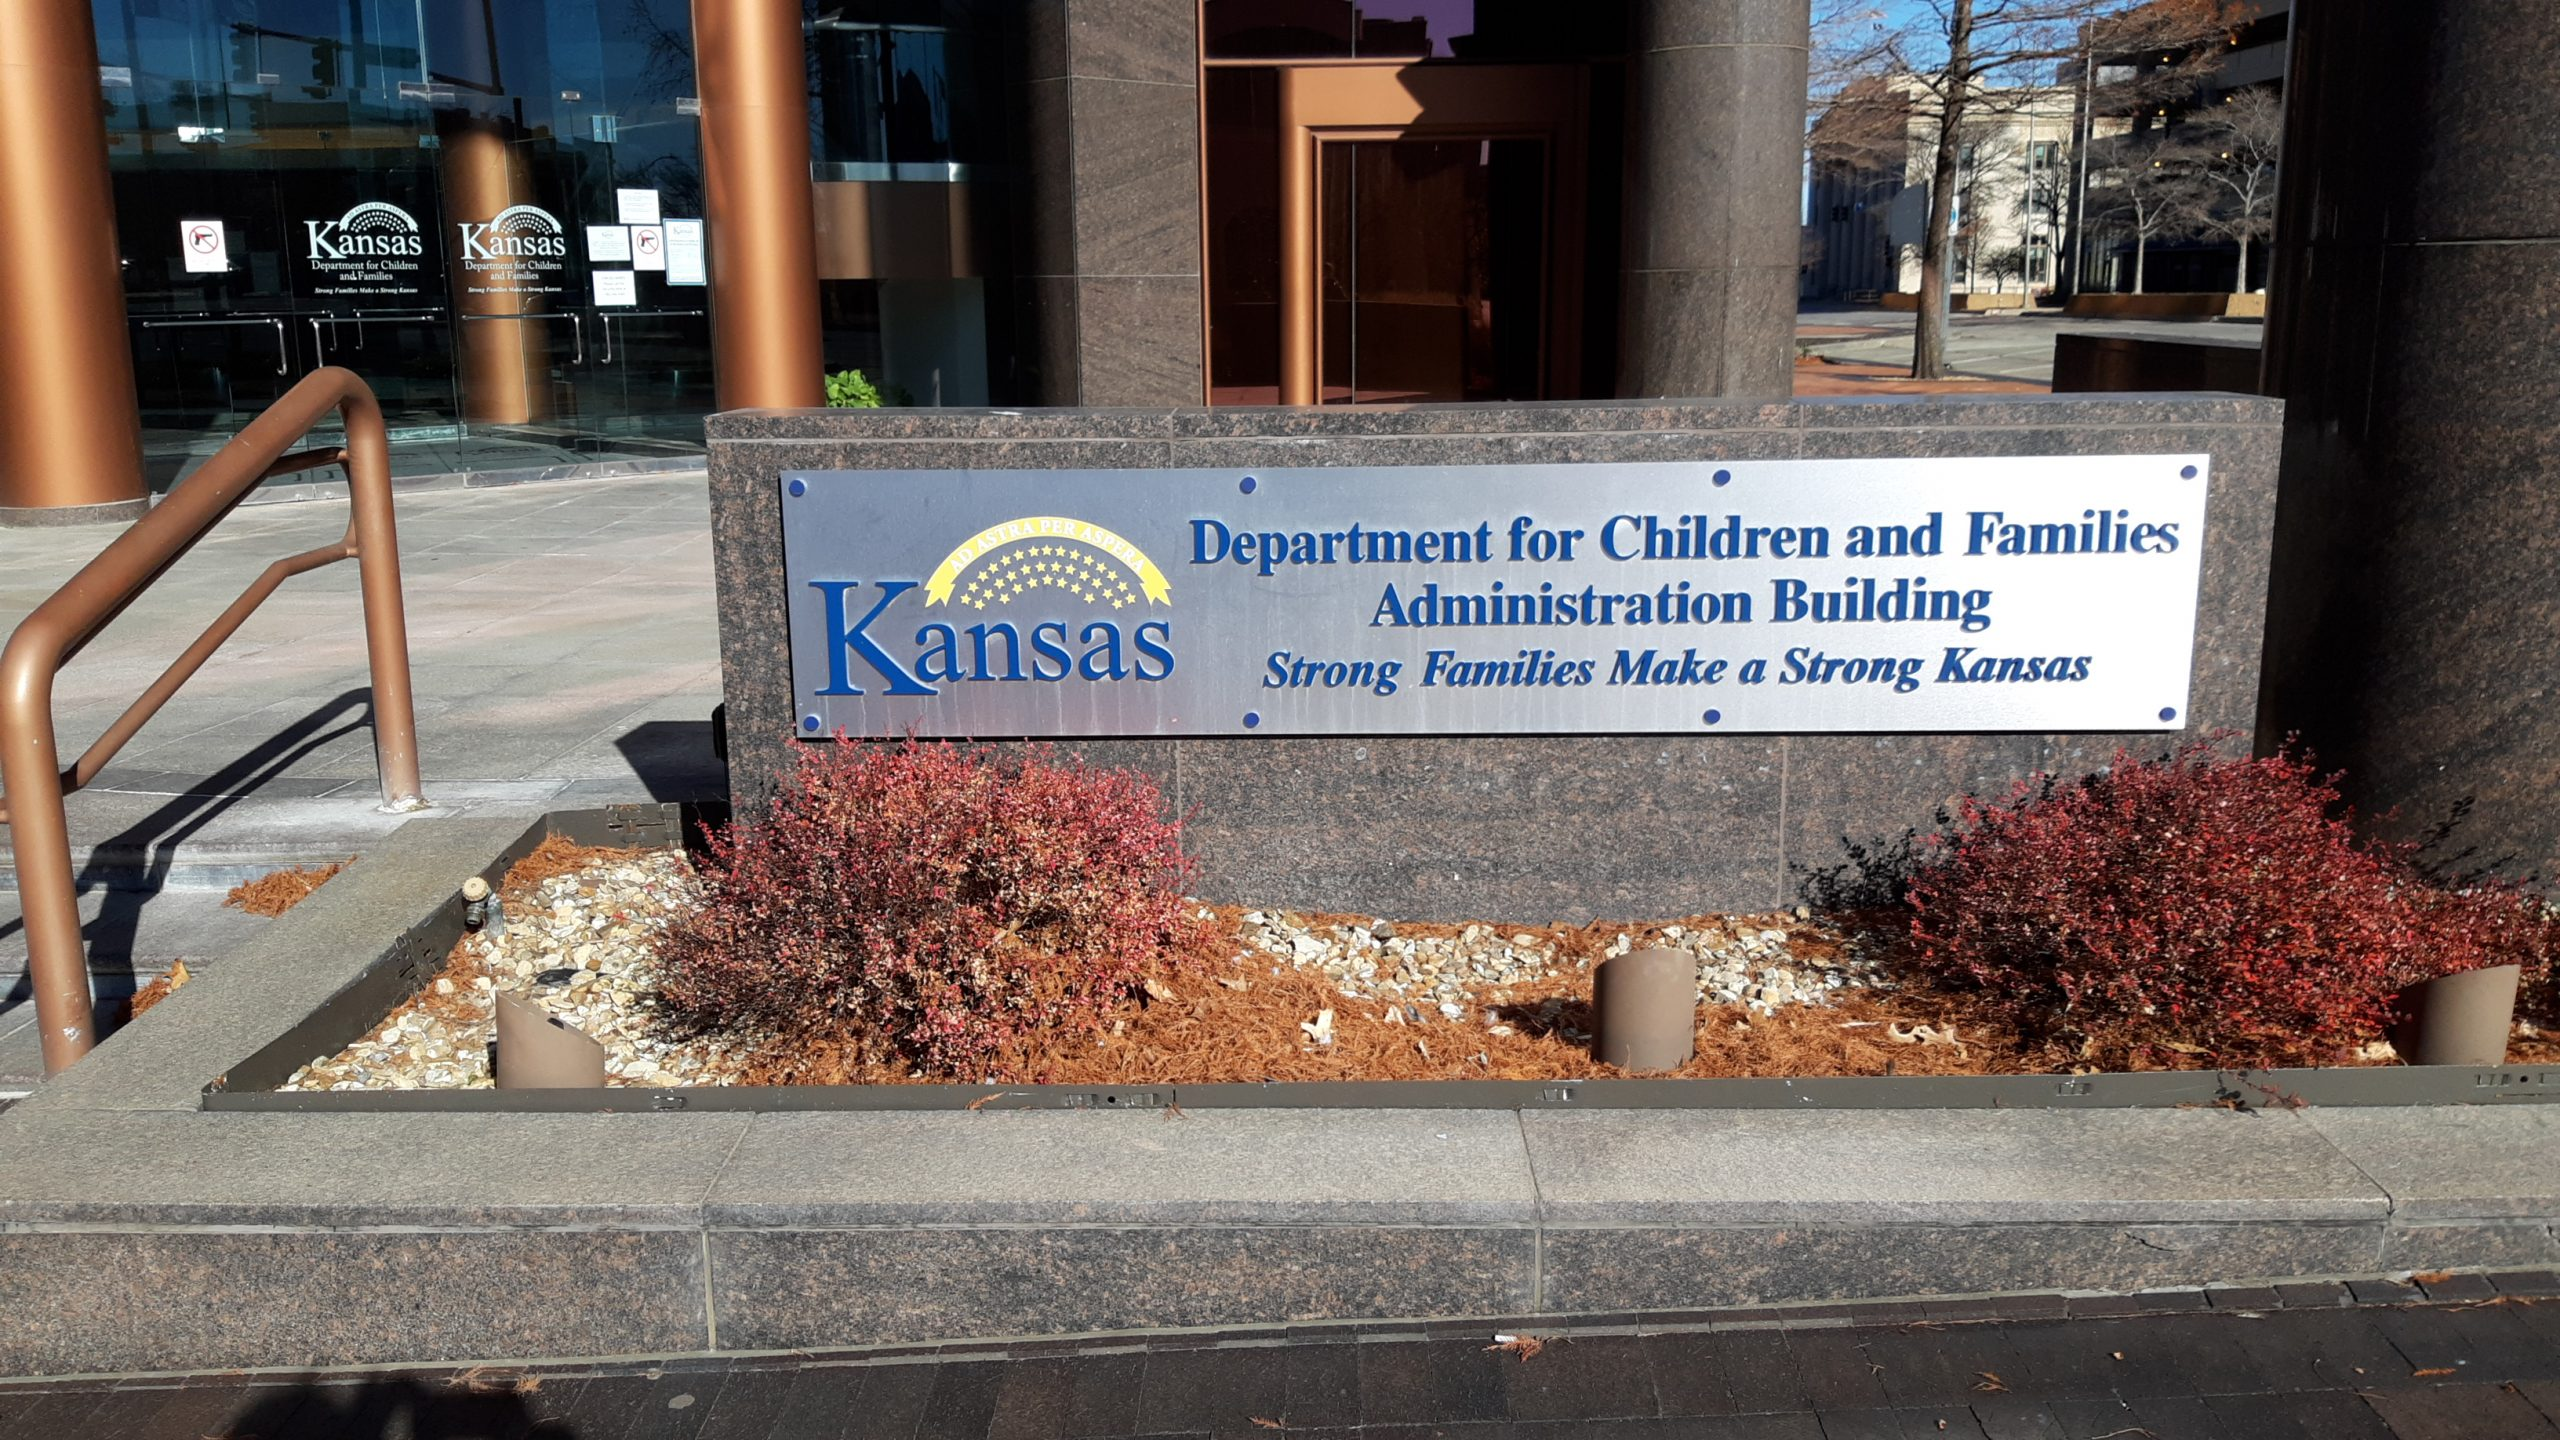 The Kansas Department for Children and Families financed an independent assessment of the privatized child-support system designed to operate in support of more than 140,000 children and their families. The review identified staff management, communication and computer issues hindering delivery of assistance. (Tim Carpenter/Kansas Reflector)